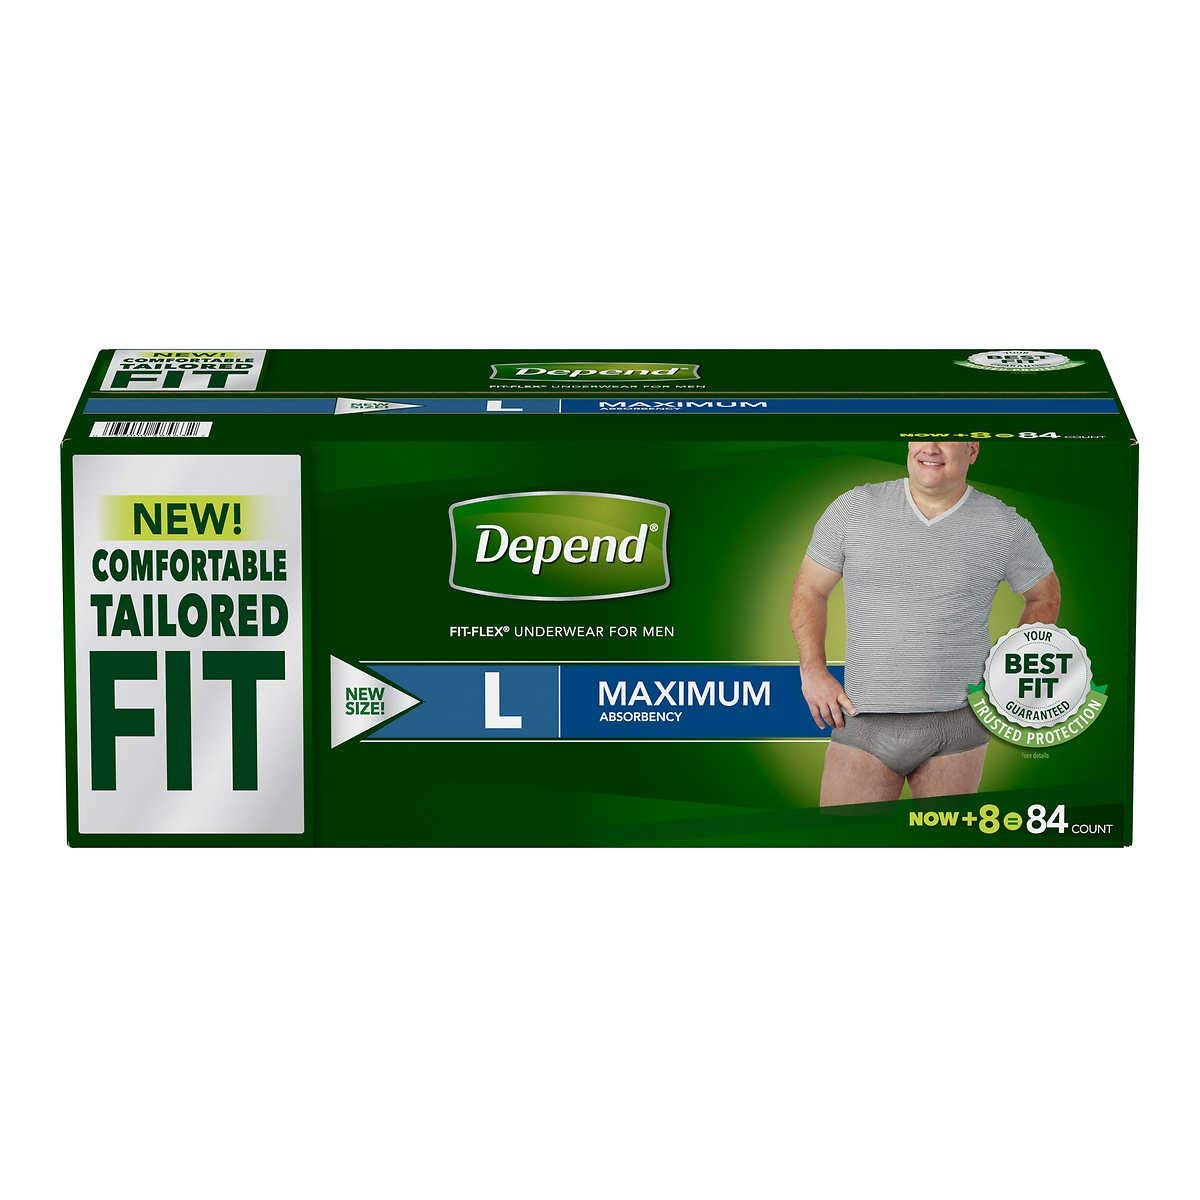 Depend FIT-FLEX Max Absorbency Underwear for Men: LARGE - 84 ct. by Depend (Image #1)